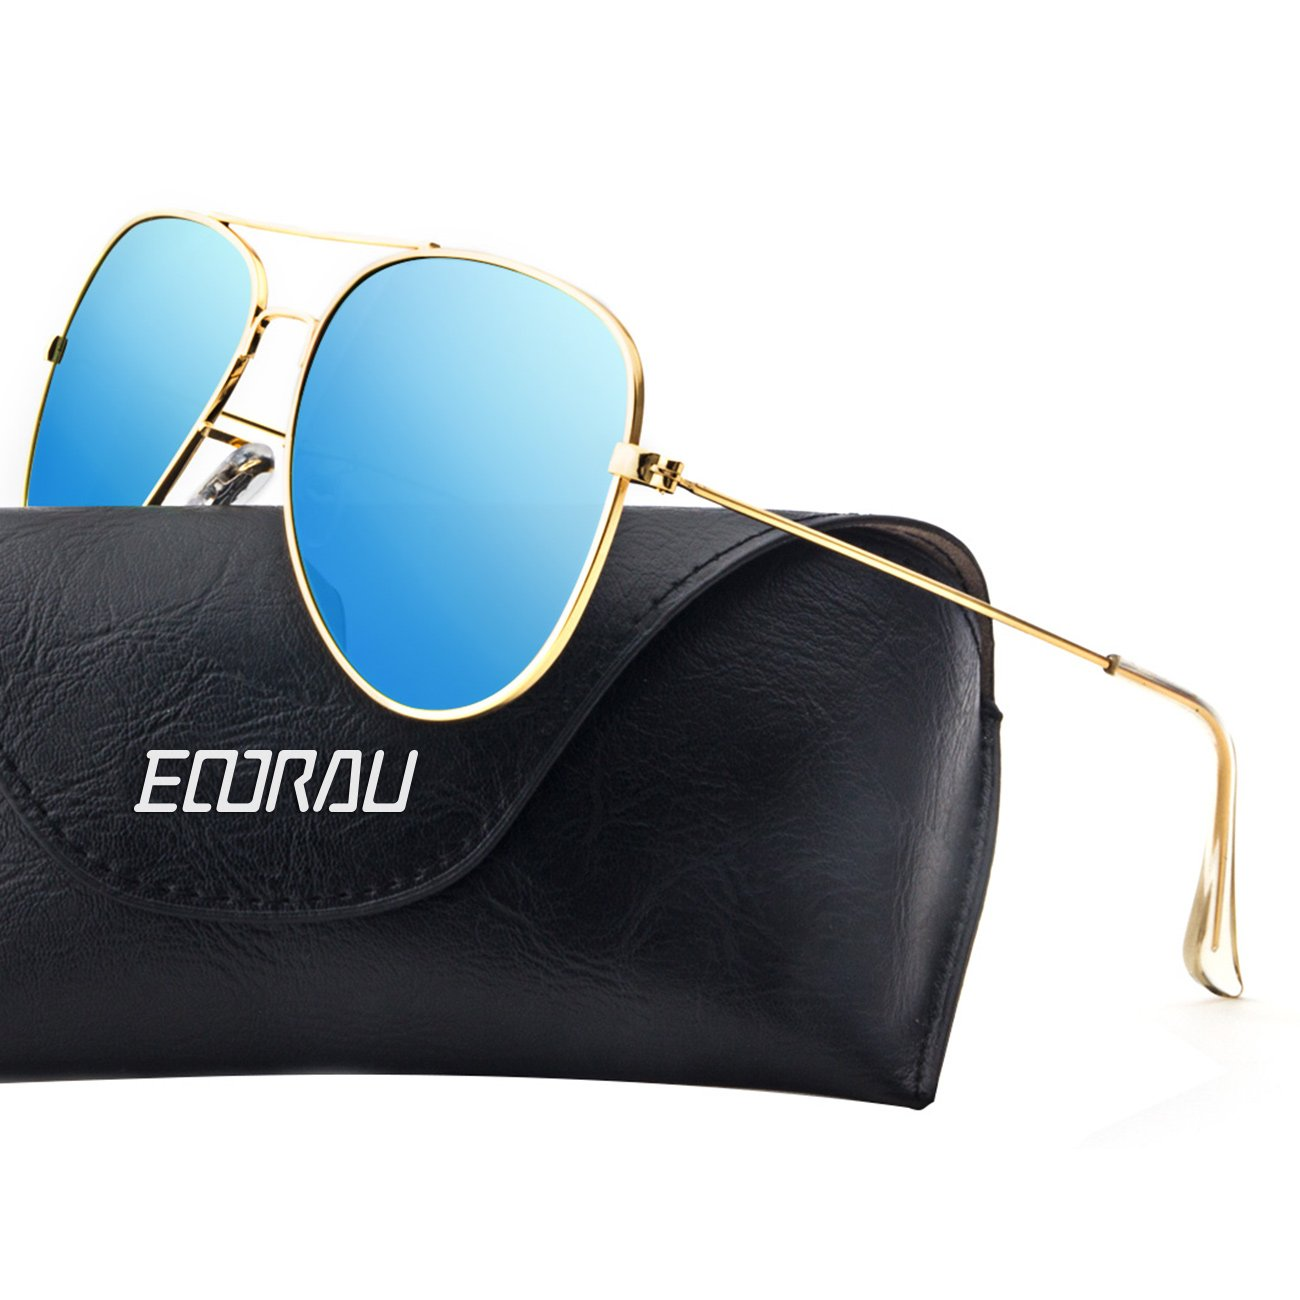 EOORAU Womens Aviator Sunglasses Polarized Mirrored for Mens Travel,Drive,Fishing Sun GlassesUV-400 (Blue lens&Gold frame)